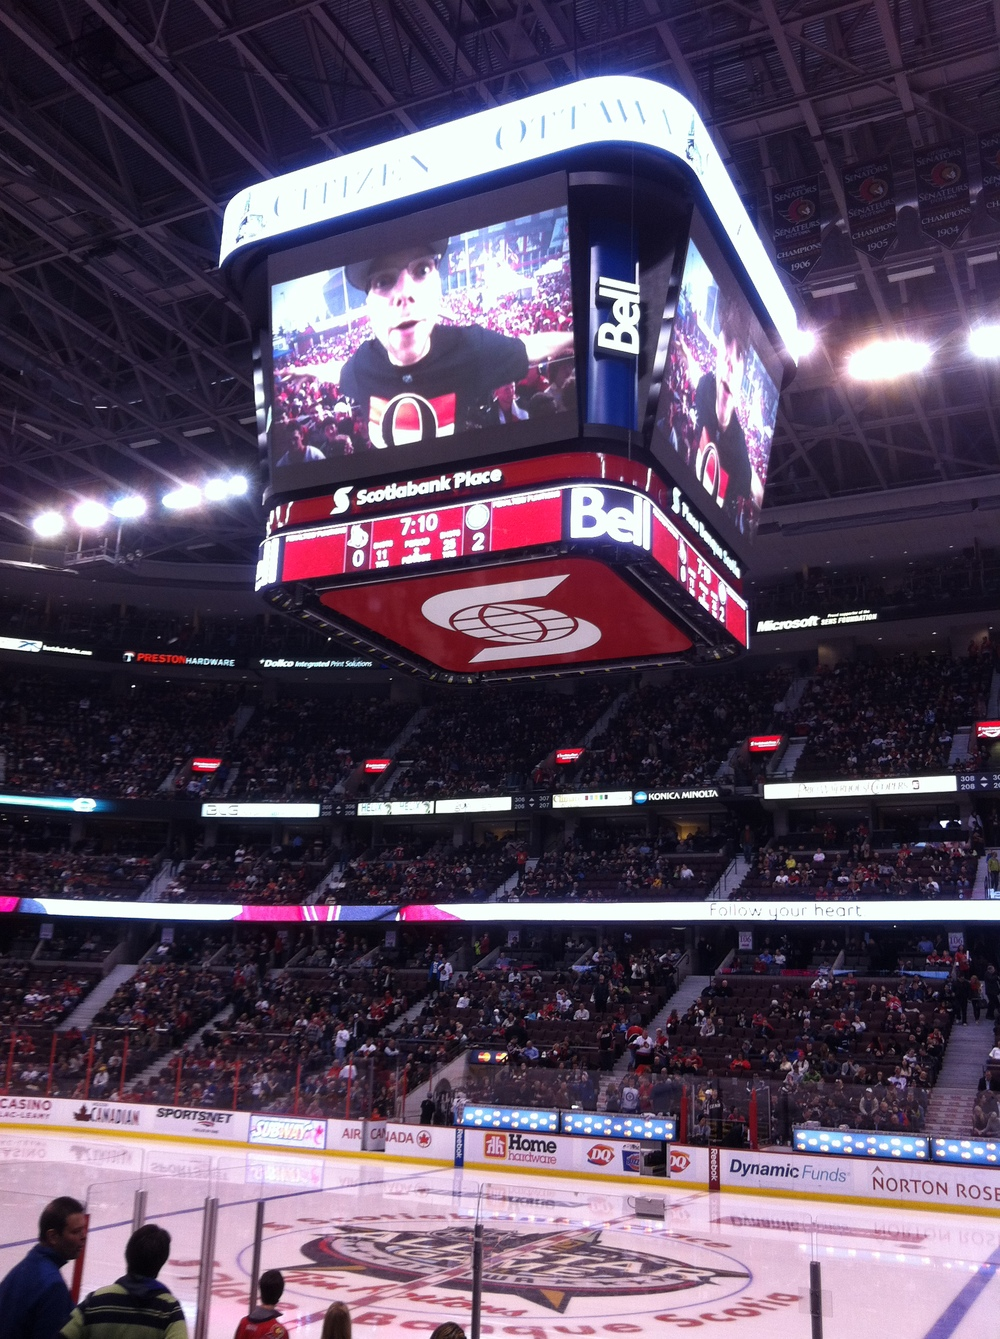 Peter Joynt - The Joynt on the screen at Scotia Bank Place